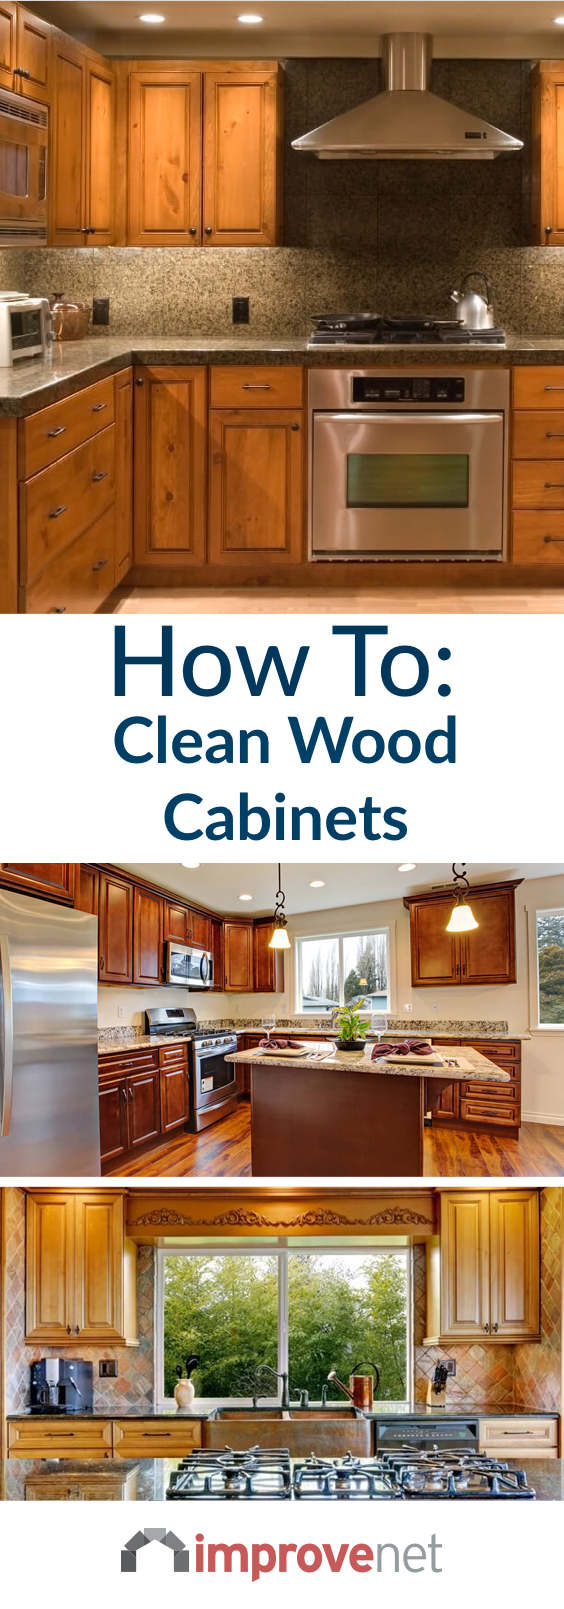 How To Clean Wood Cabinets & Make Them Shine | Cleaning ...